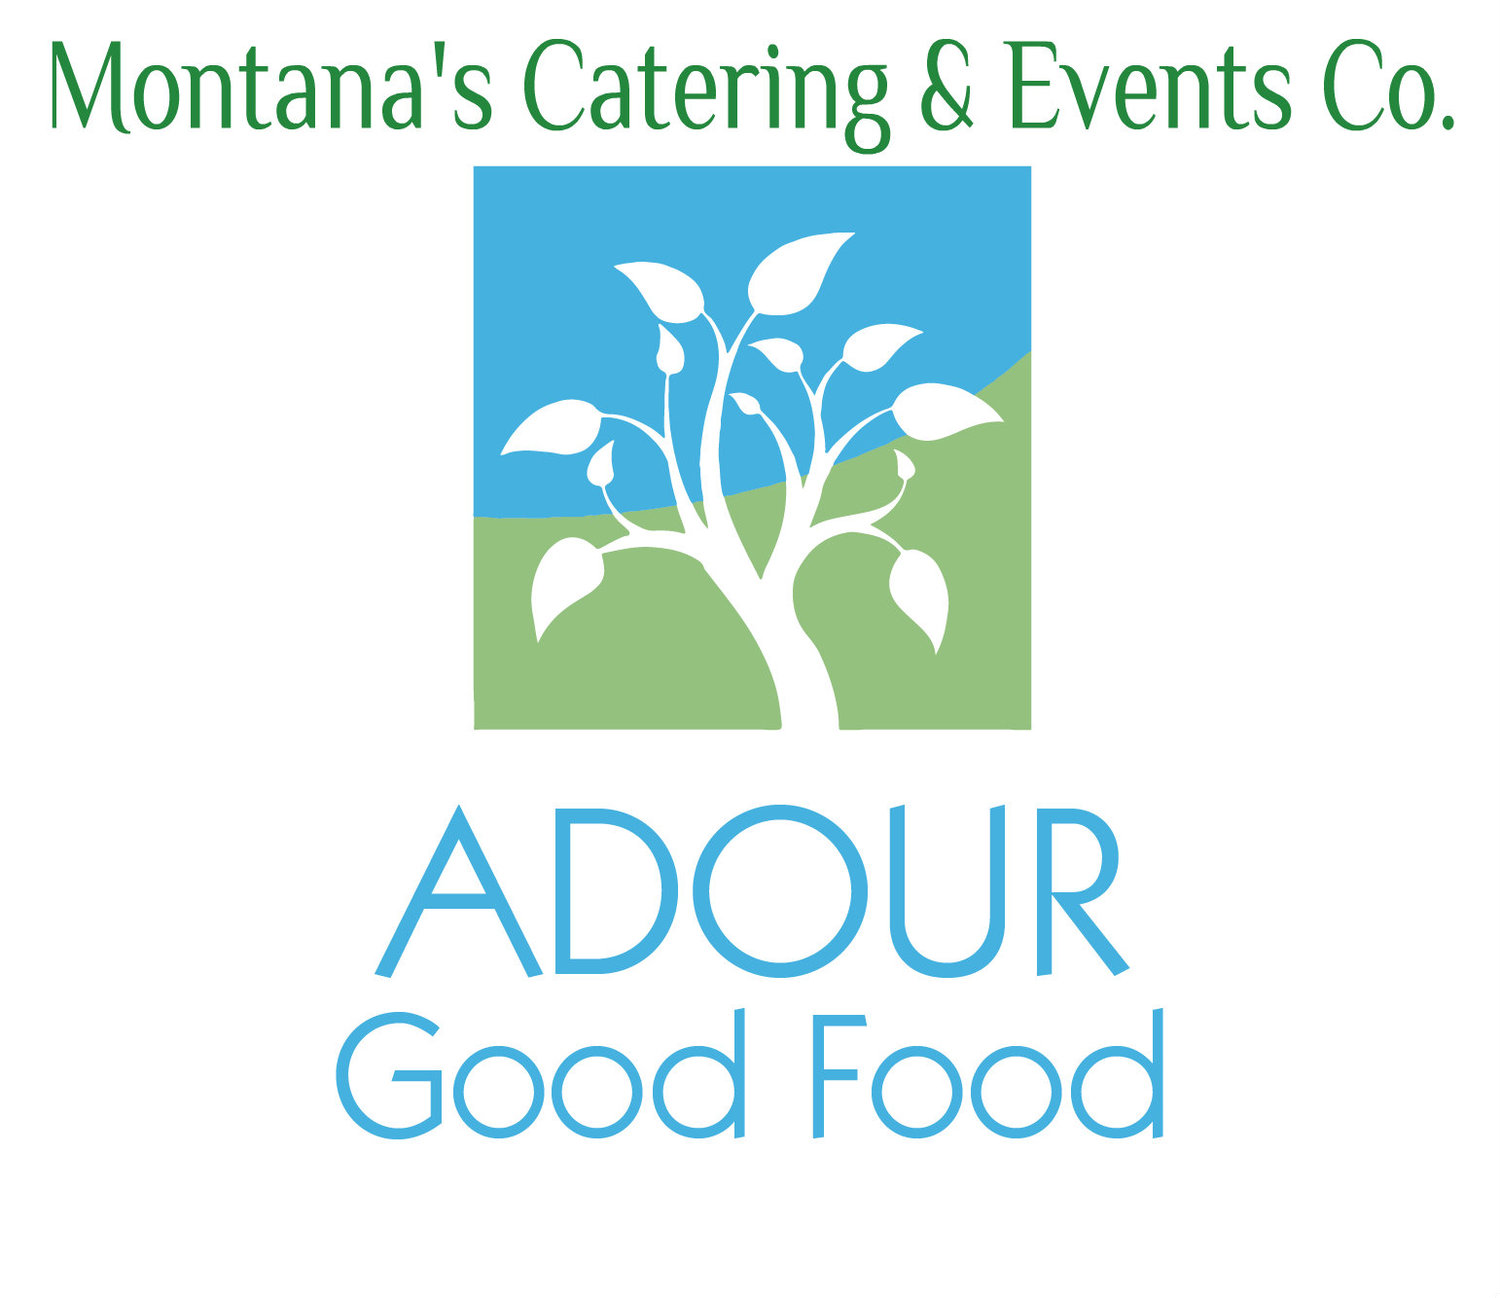 Adour Good Food Catering + Events